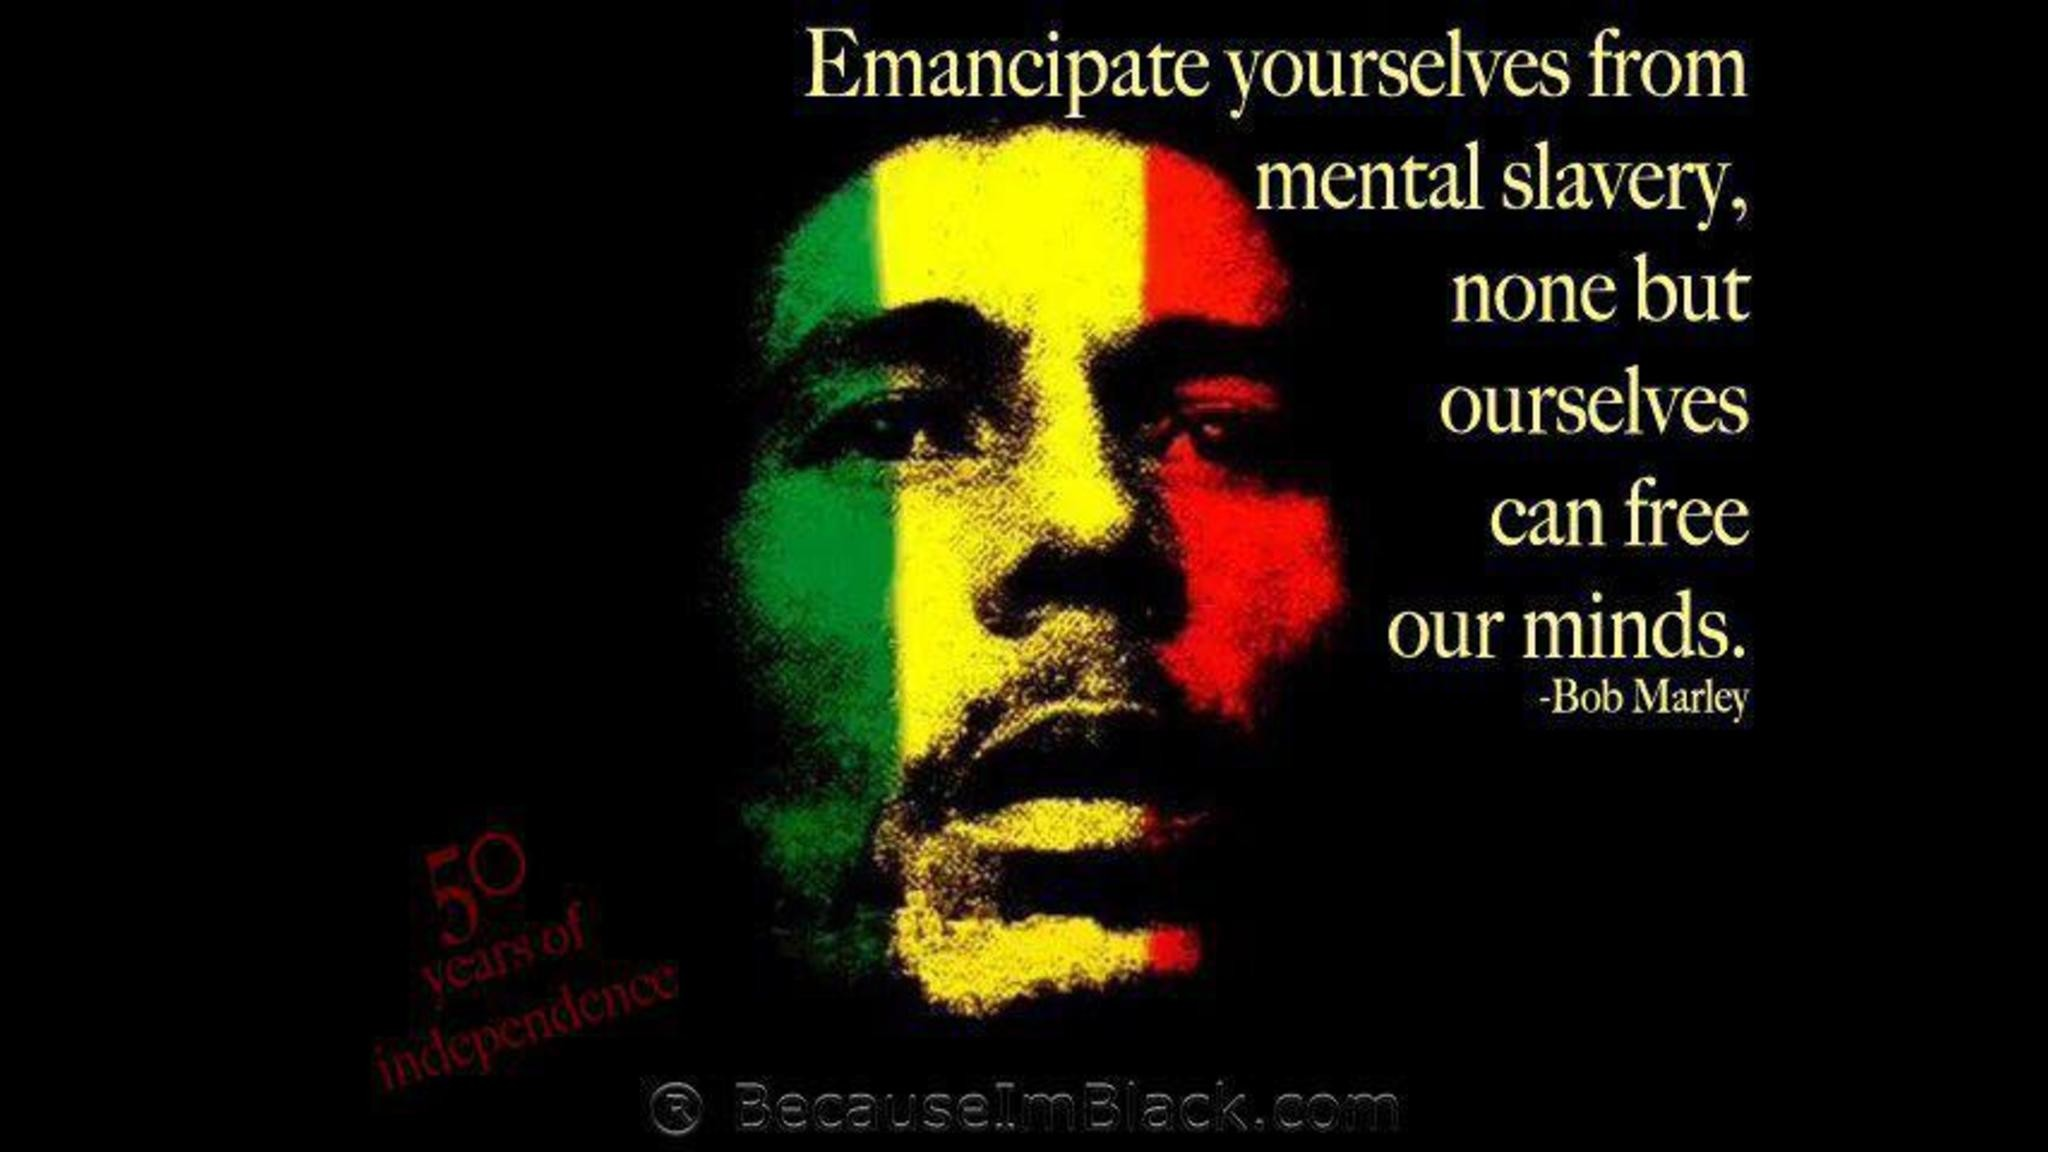 Bob Marley Wallpaper ① Download Free Beautiful Backgrounds For